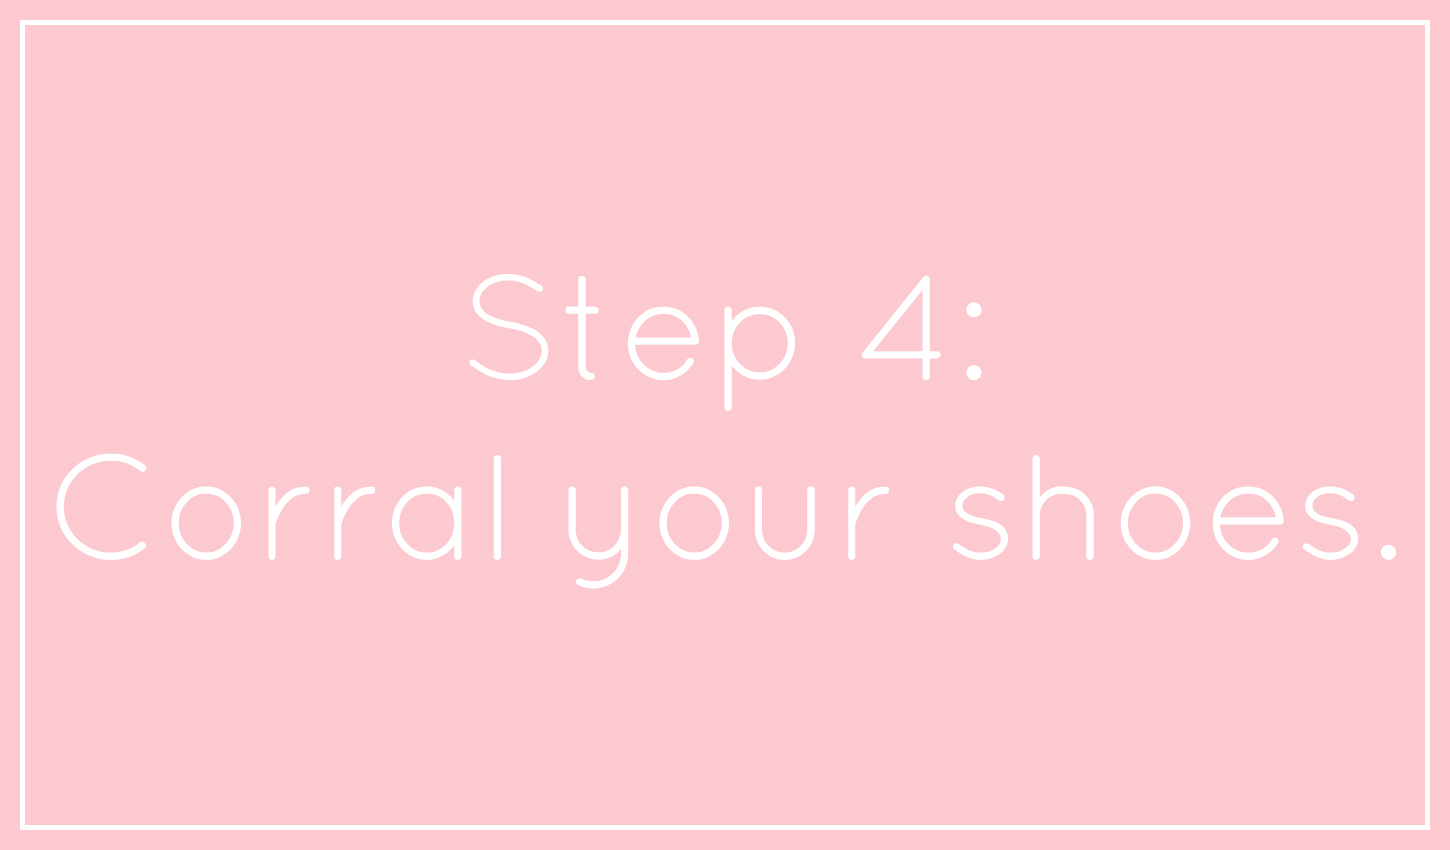 Step 4 in our Making Over a Bedroom Closet series at hprallandco.com